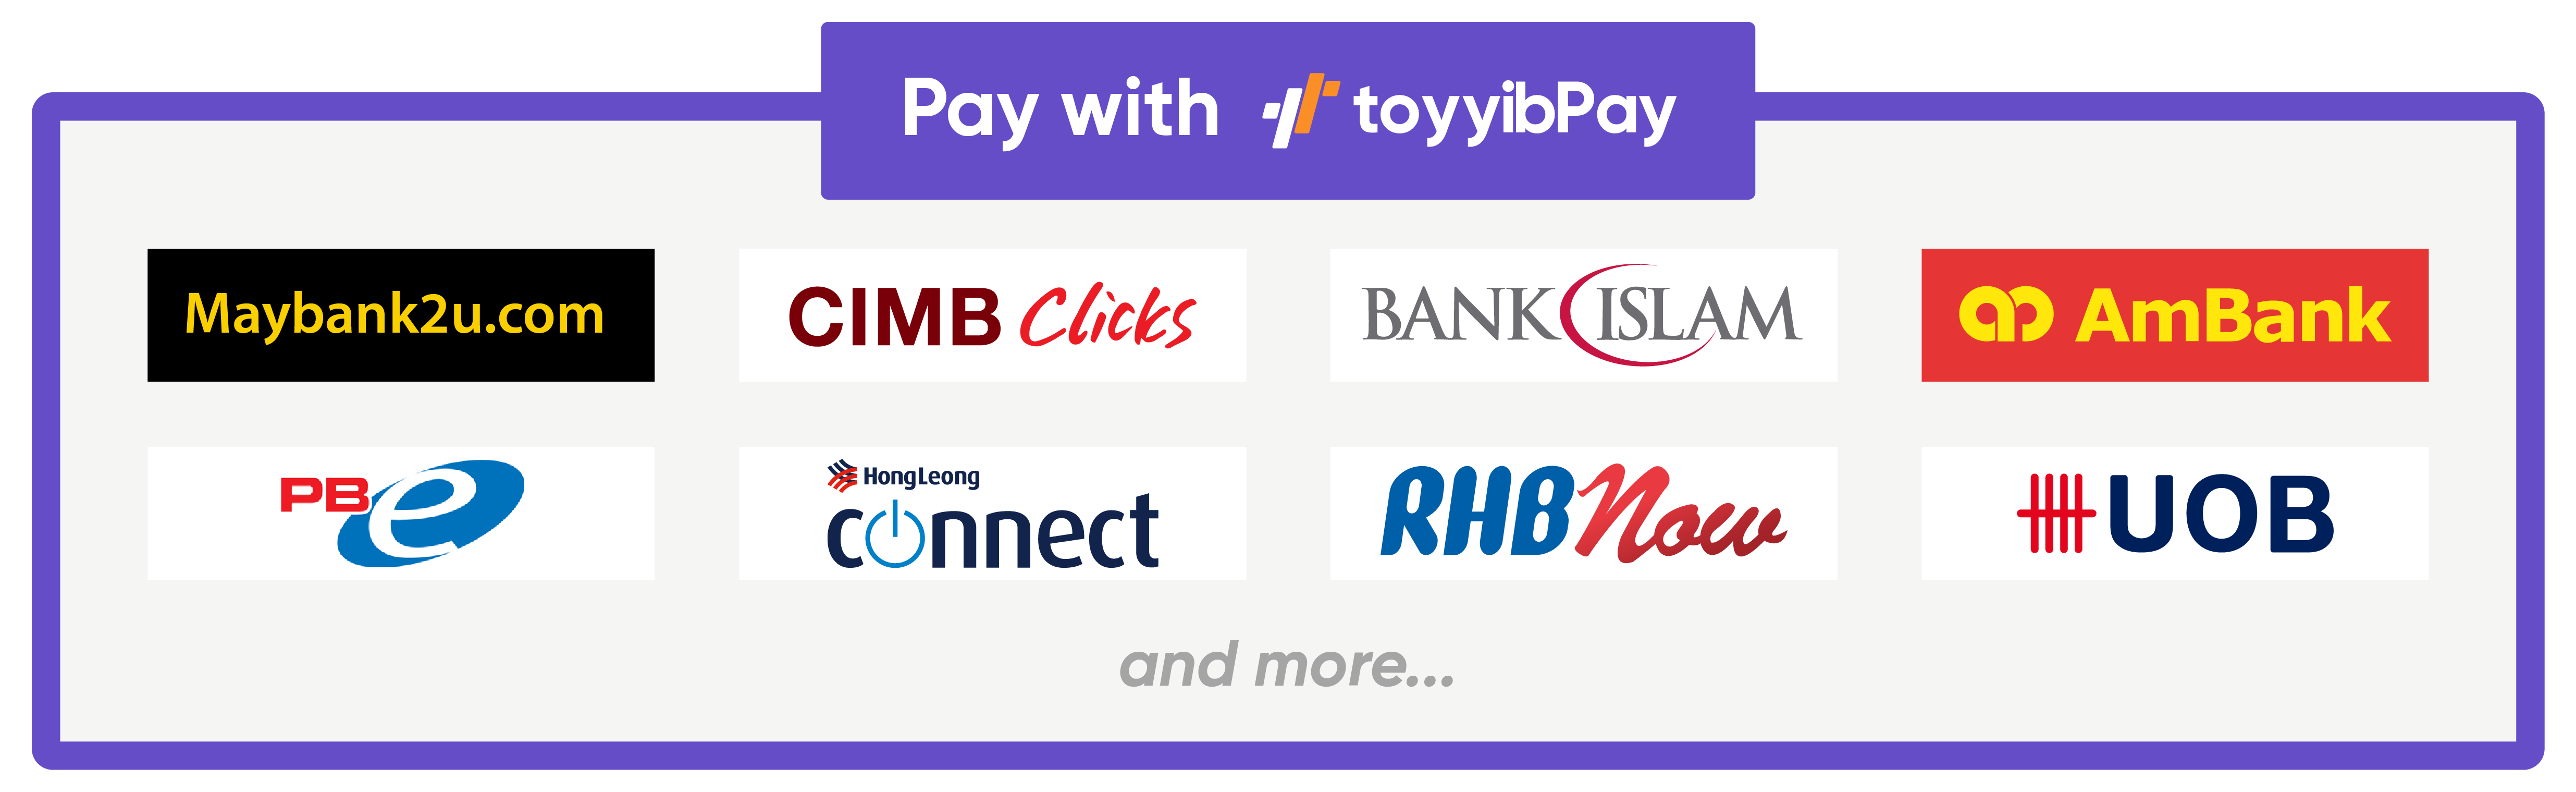 Pay by FPX or Credit/Debit Card